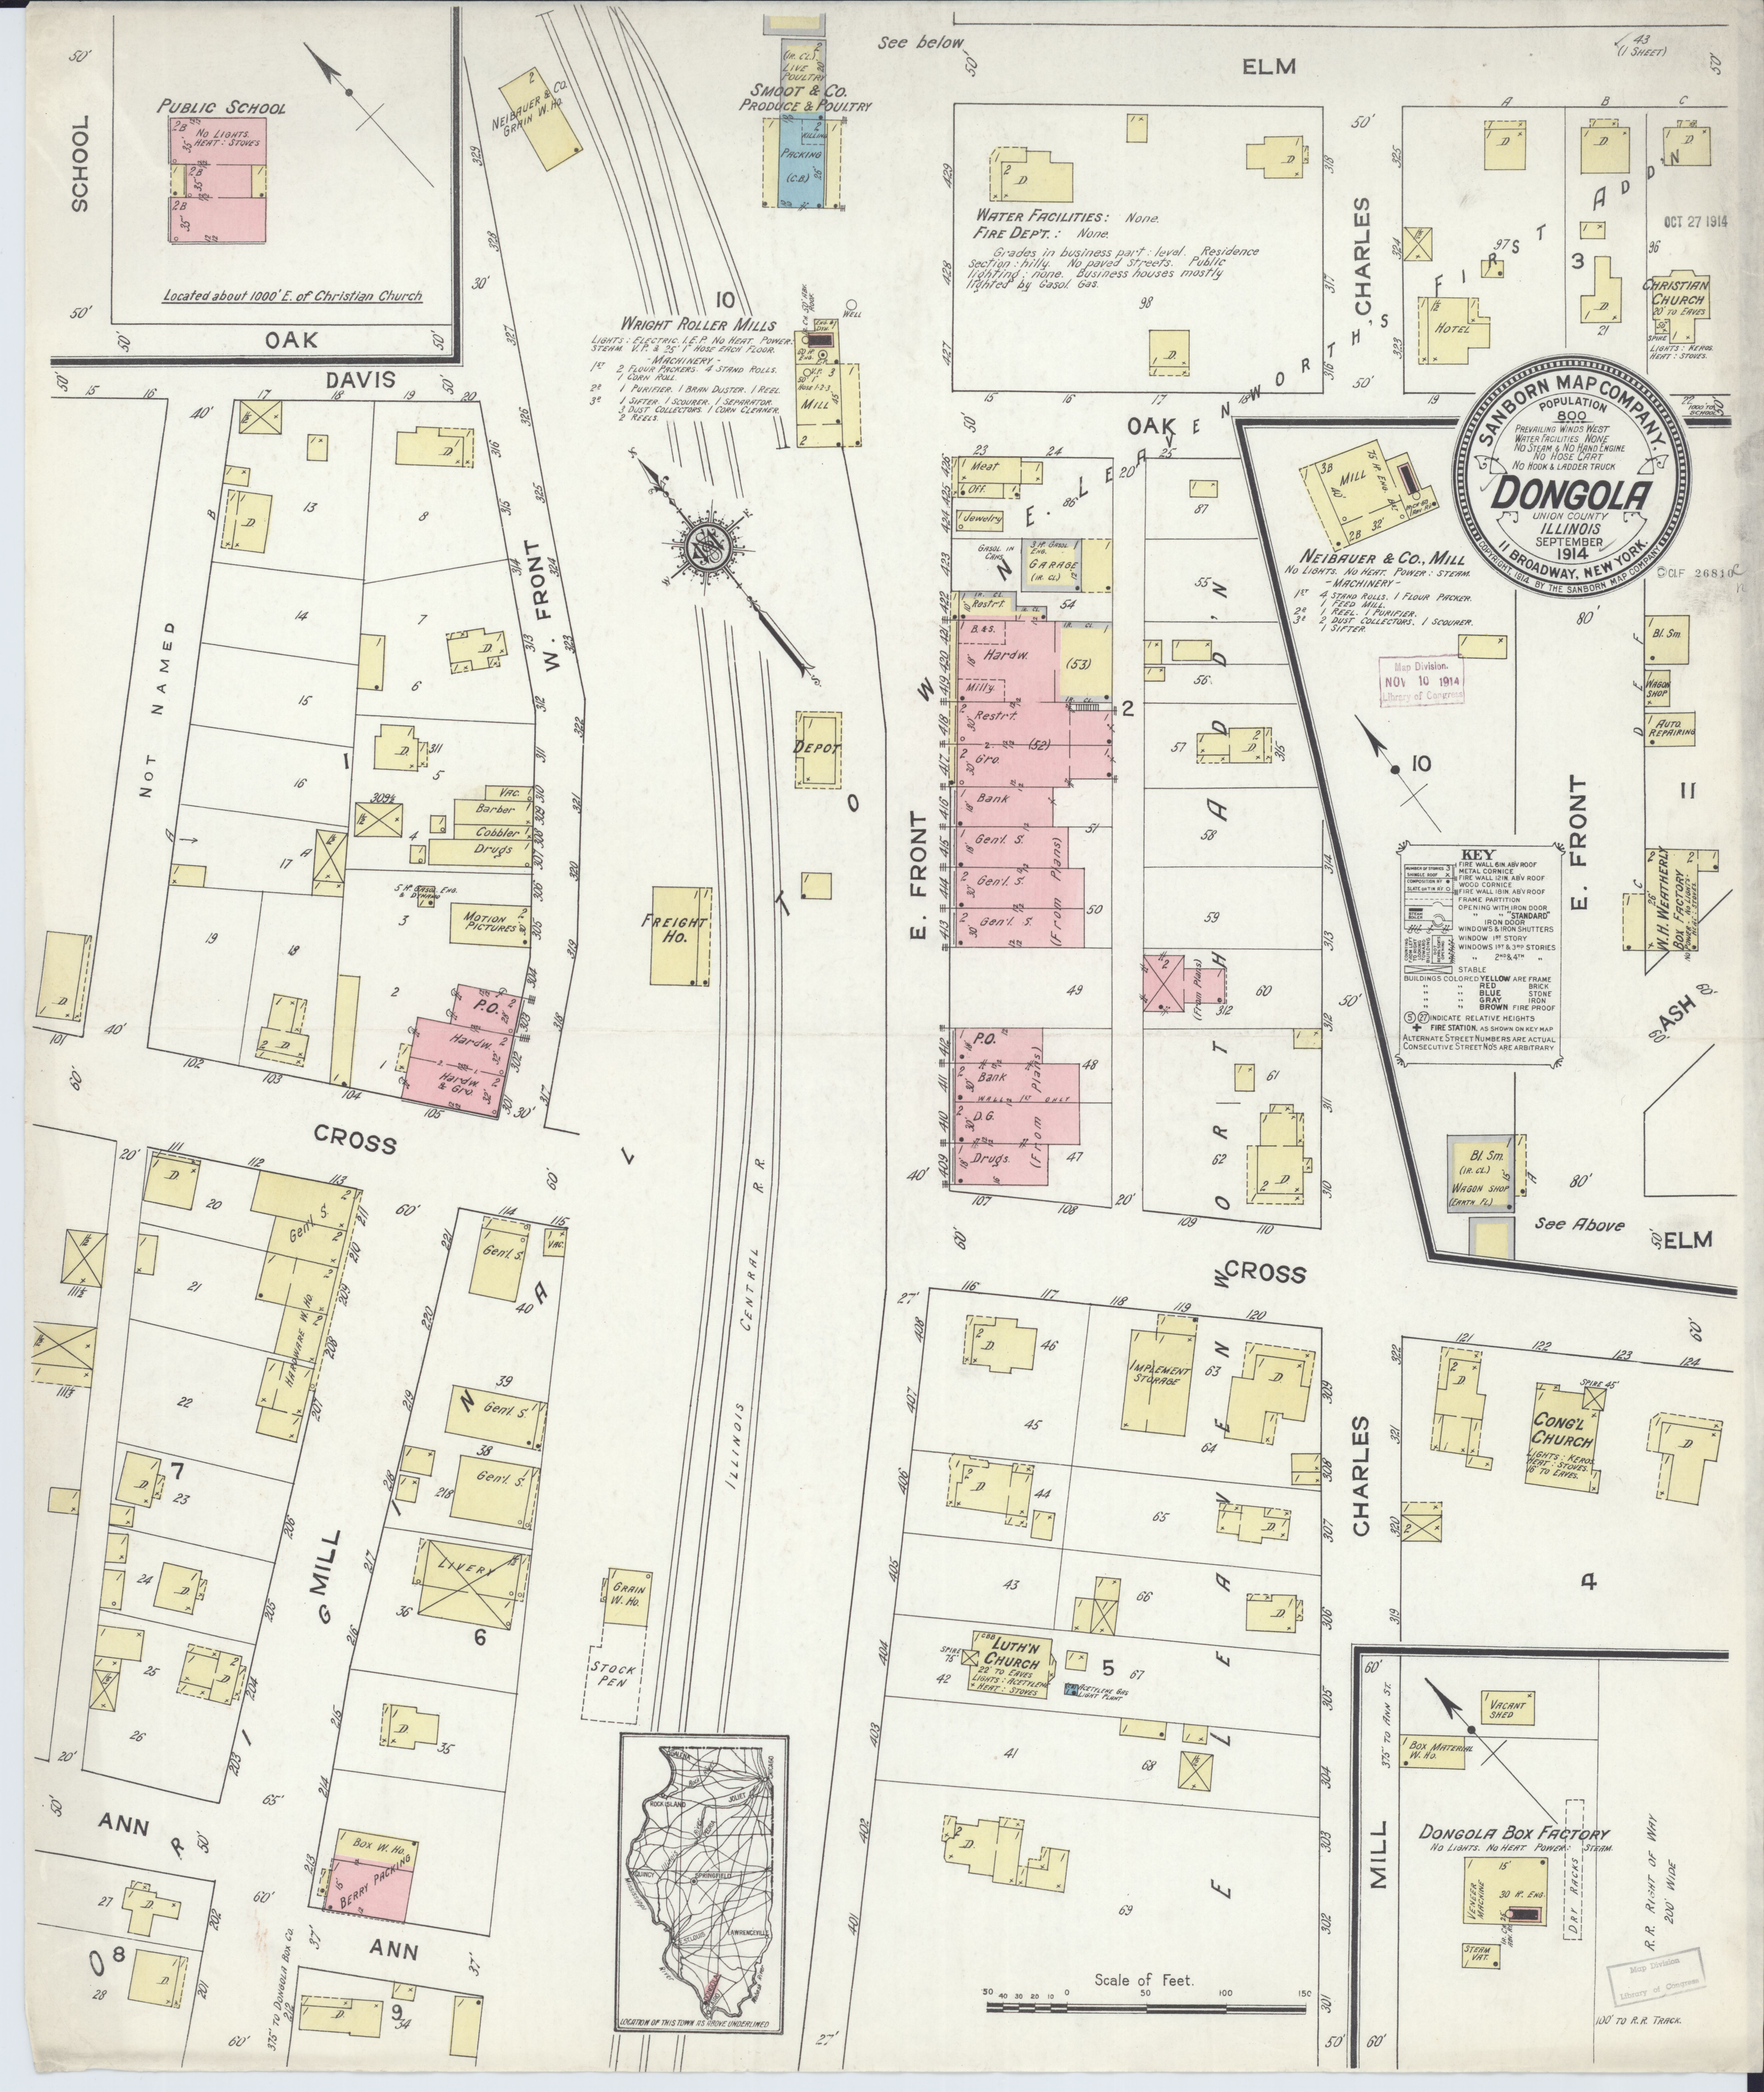 File:Sanborn Fire Insurance Map from Dongola, Union County, Illinois on map of elmwood, map of flossmoor, map of dalzell, map of wadi halfa, map of granite city, map of zinder, map of rumbek, map of farmer city, map of south darfur, map of kenema, map of faiyum, map of elburn, map of zeila, map of brownstown, map of kom ombo, map of arthur, map of dallas city, map of future city, map of giant city state park, map of rafah,